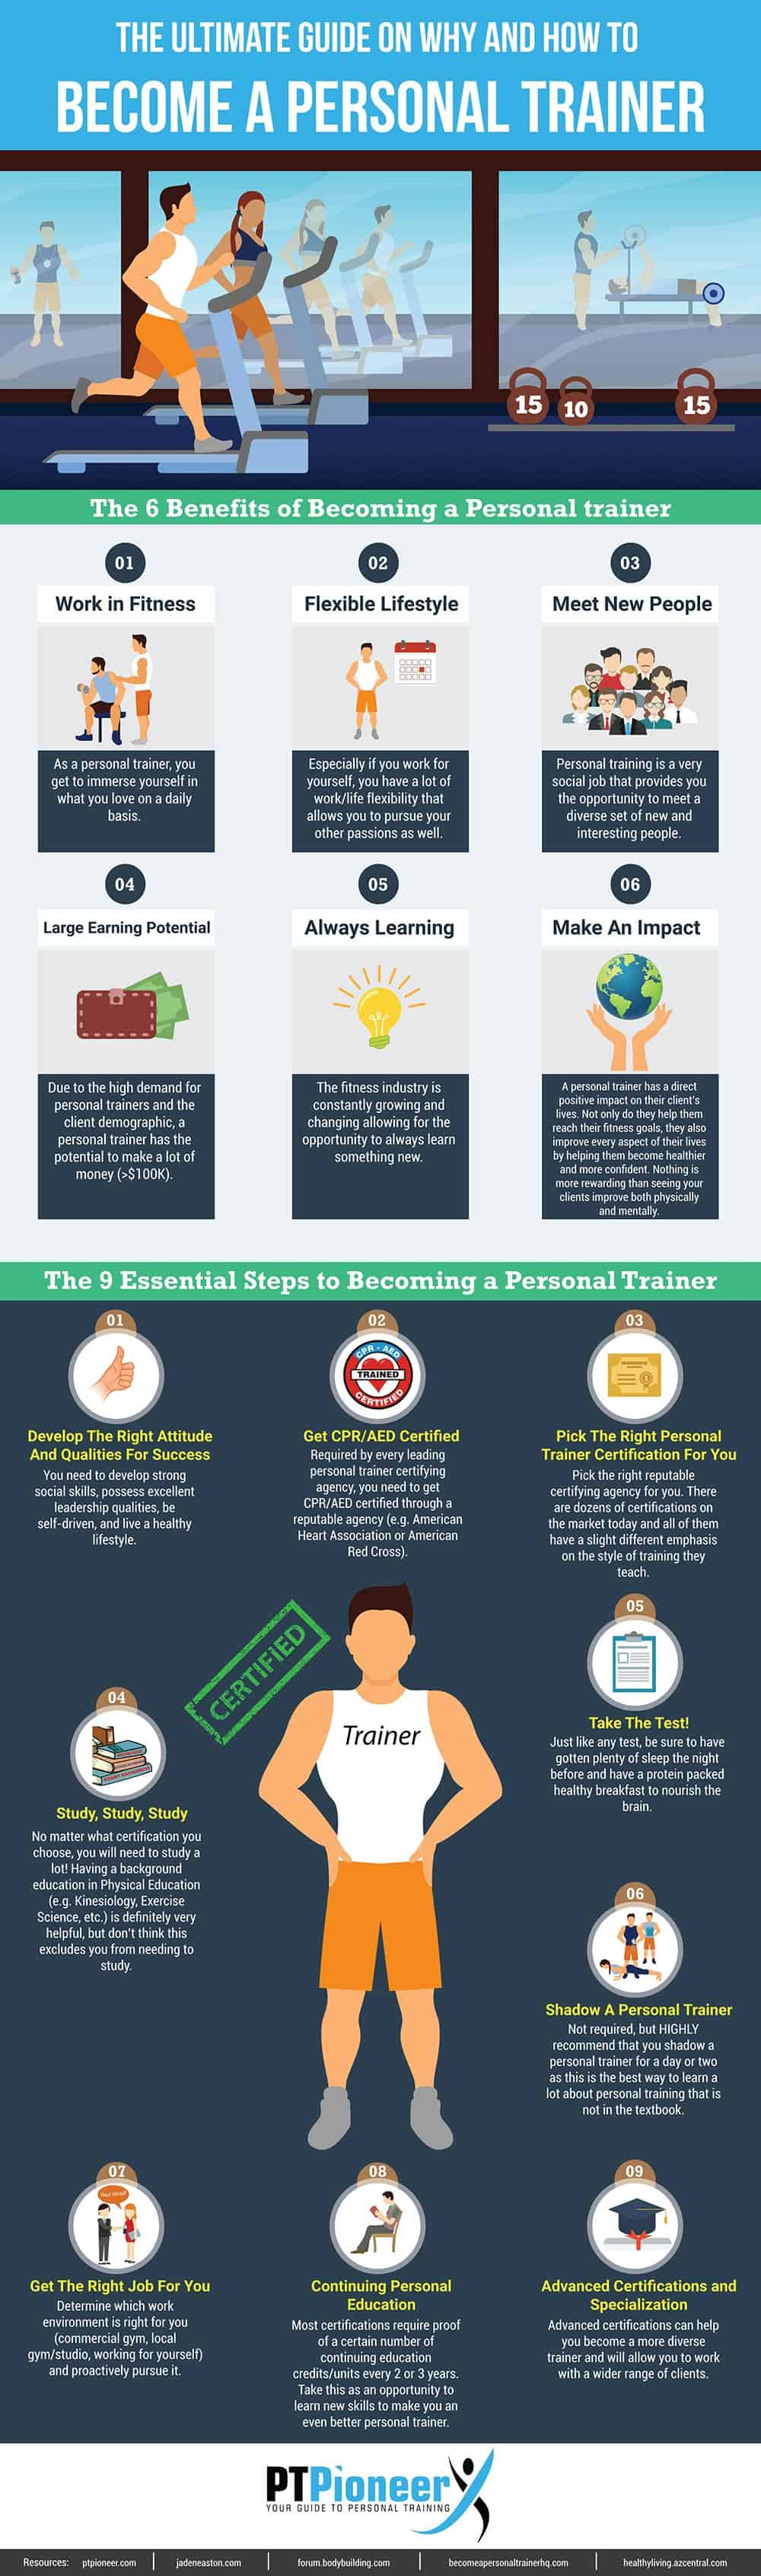 How to become a personal trainer ptps ultimate guide ptpioneer how to become a personal trainer xflitez Images